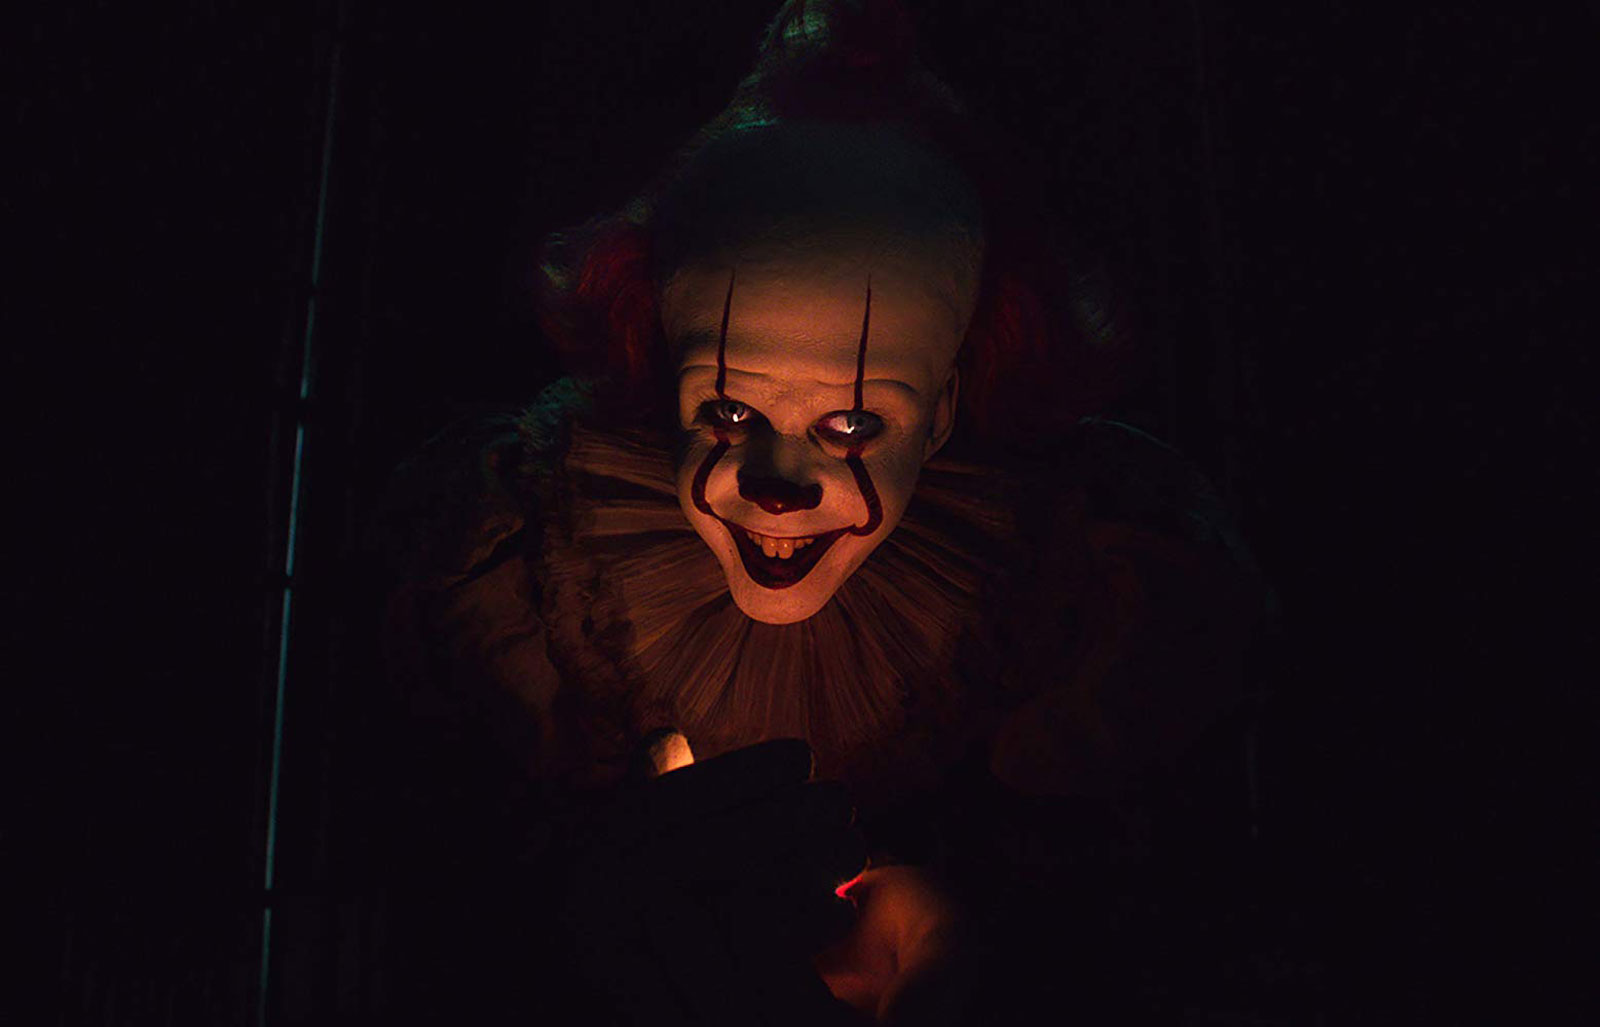 Crítica: It – Capítulo Dois (It: Chapter Two)